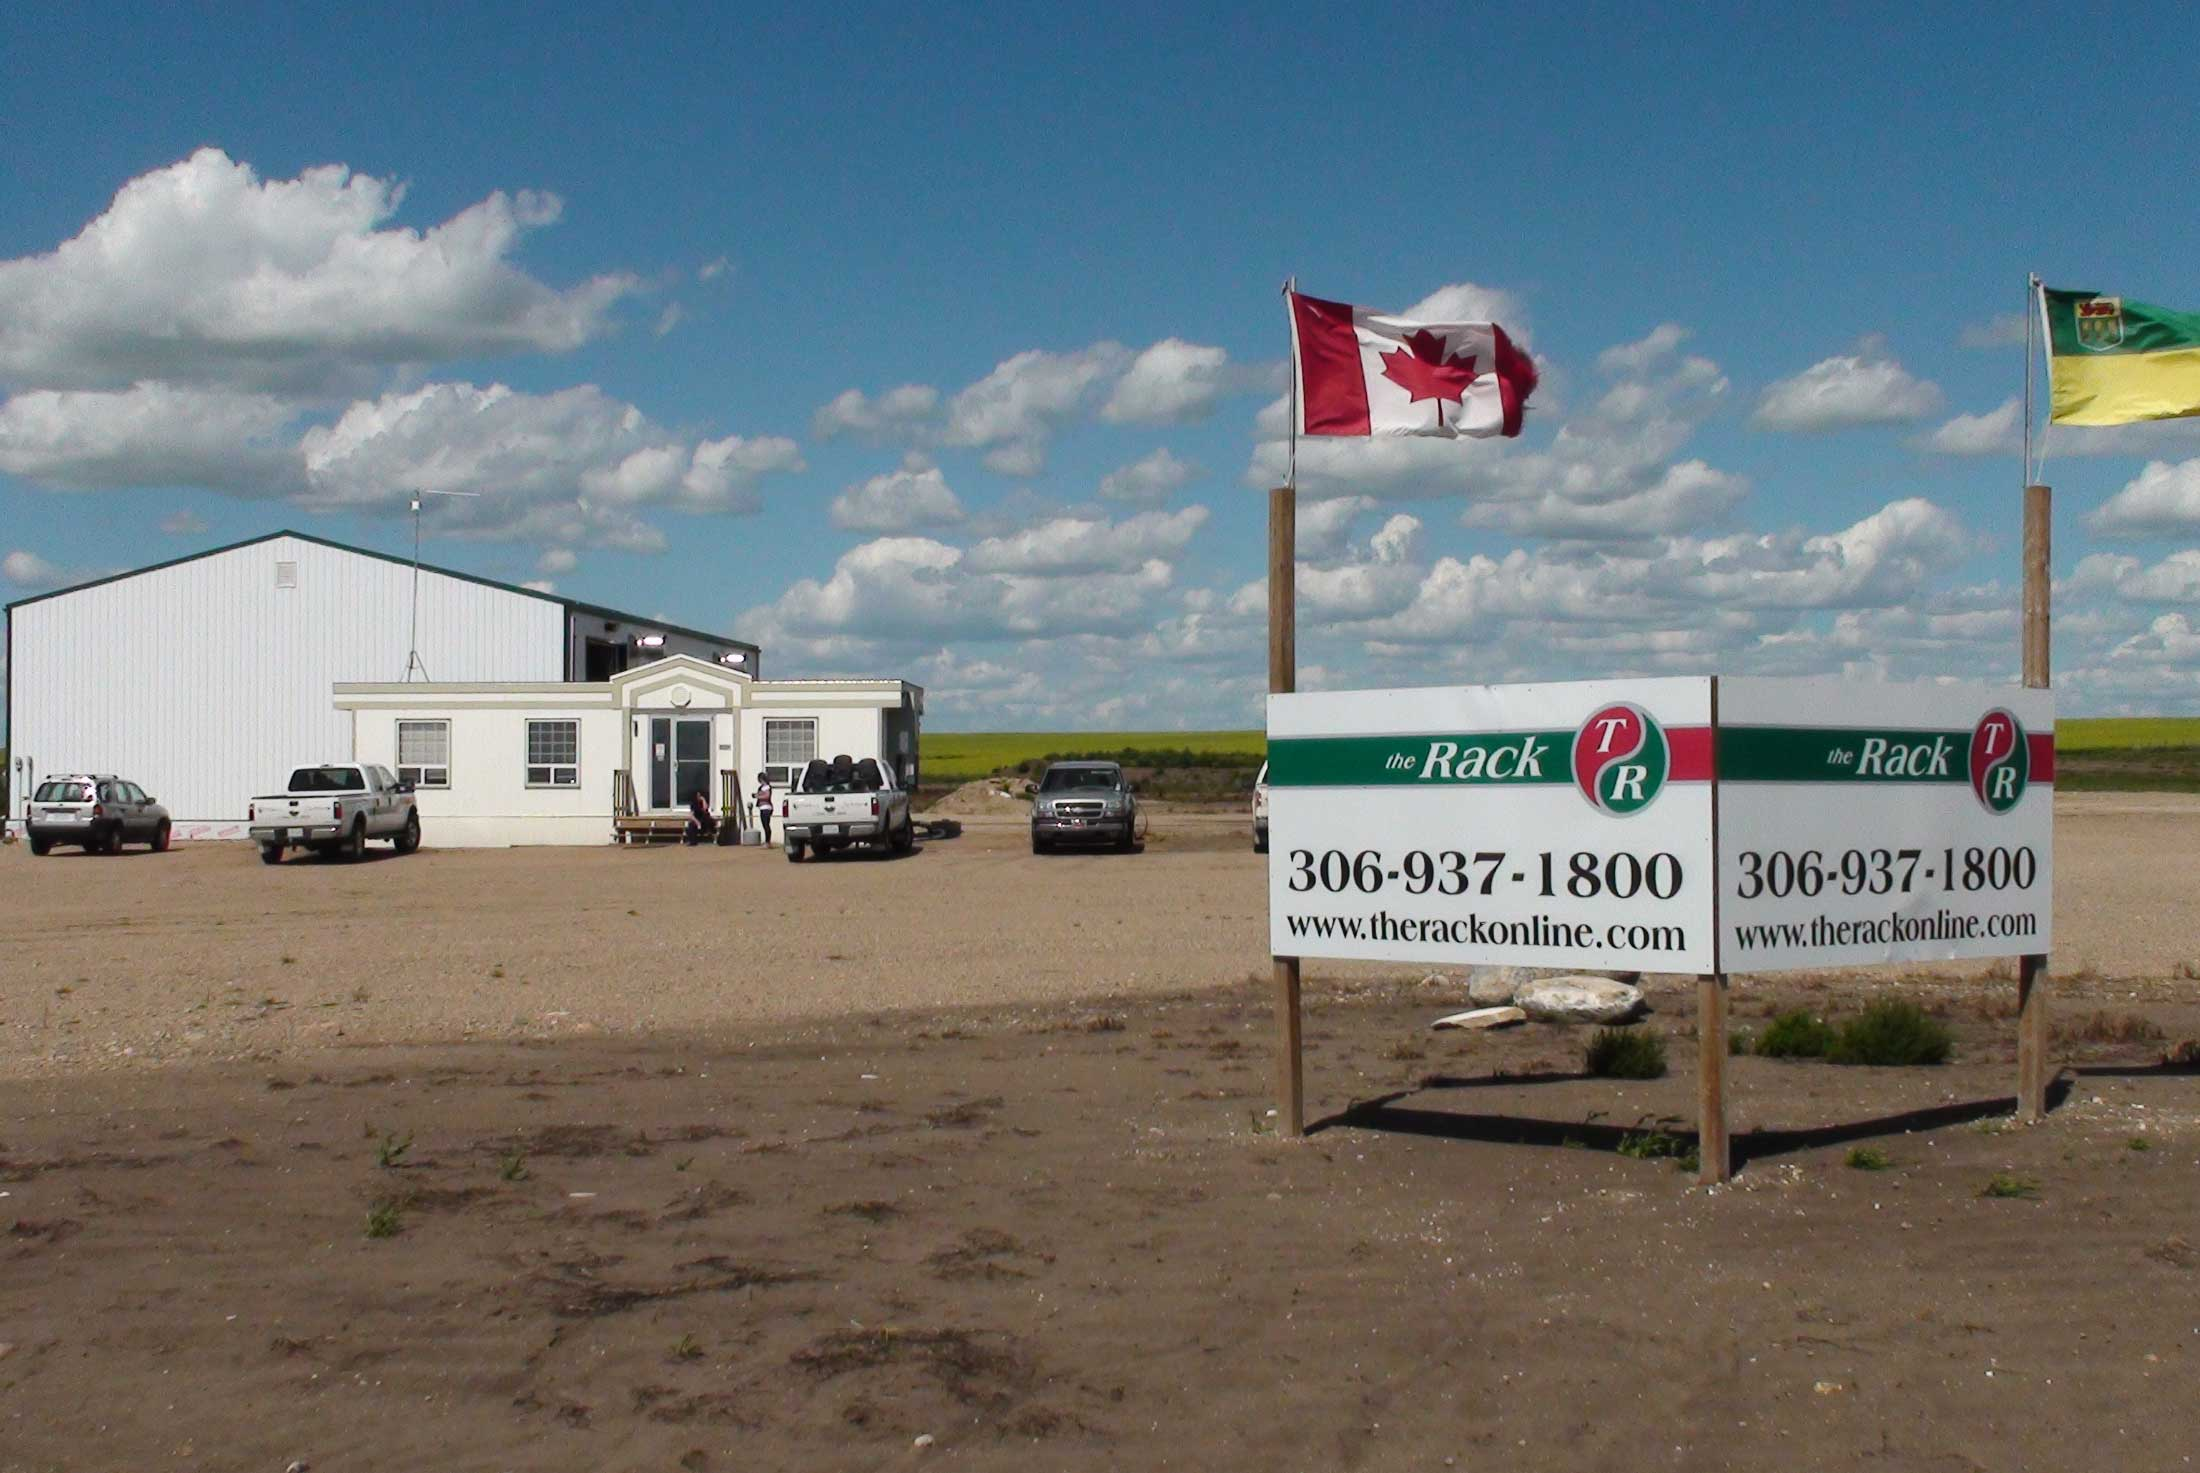 The Rack retail office in North Battleford